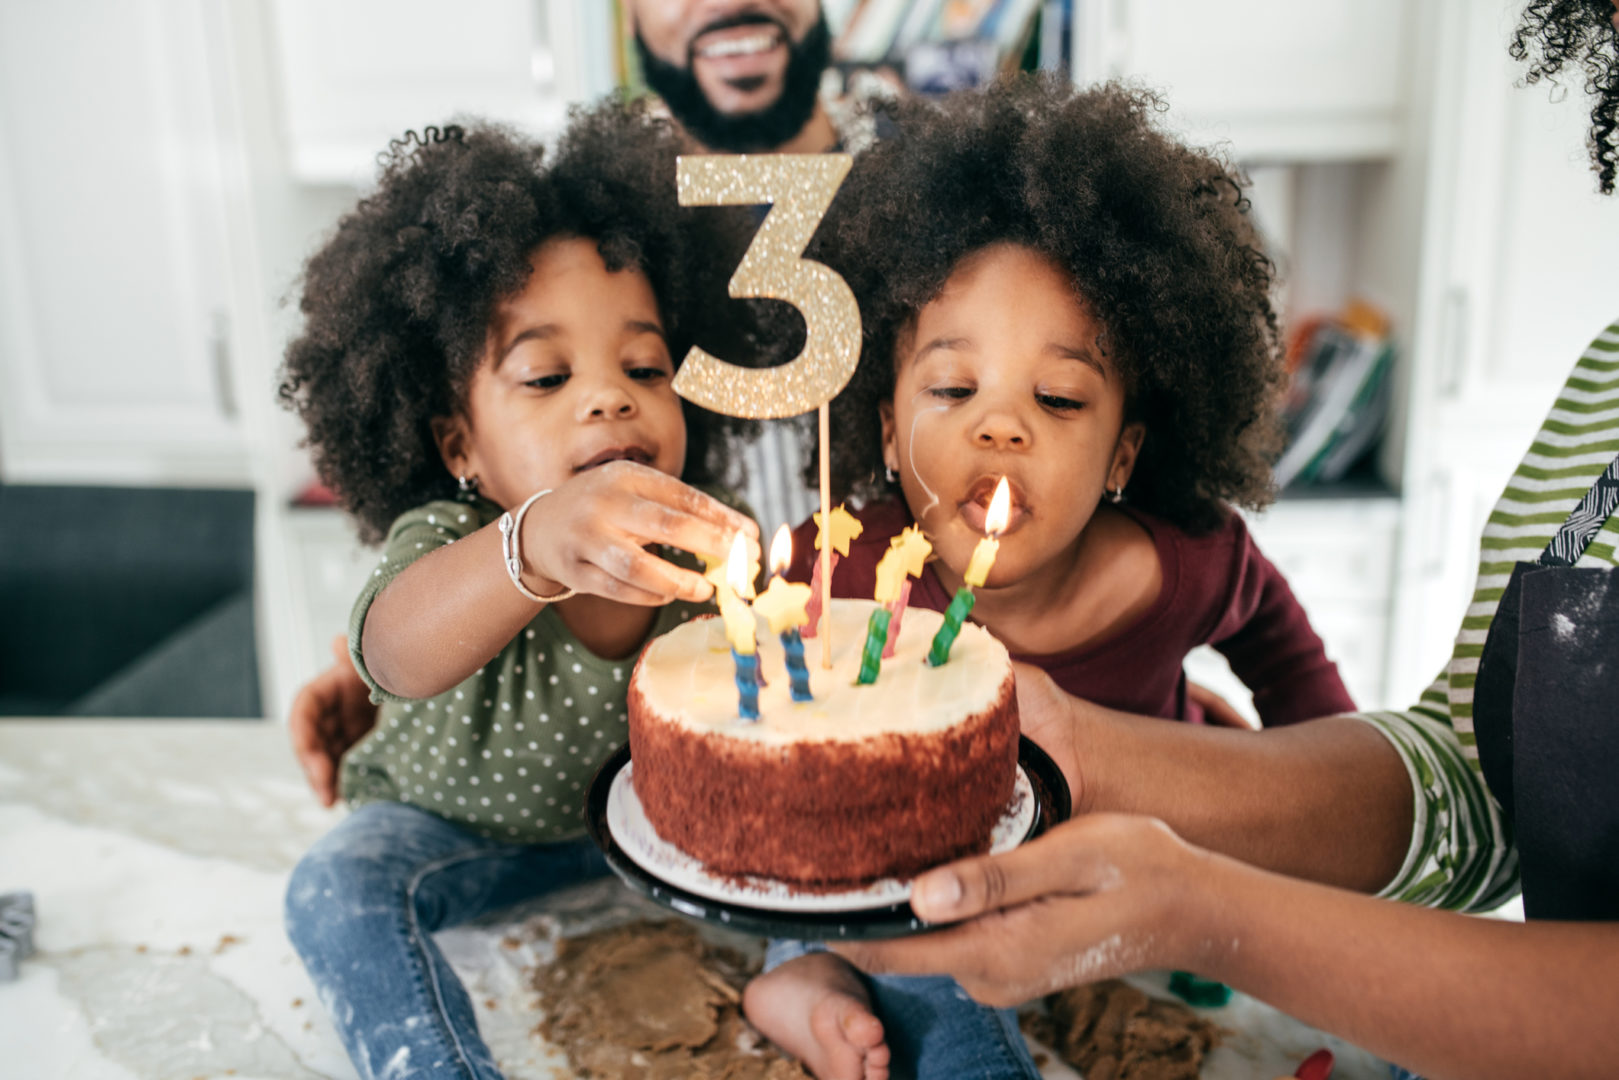 9 joint birthday party ideas kids will love